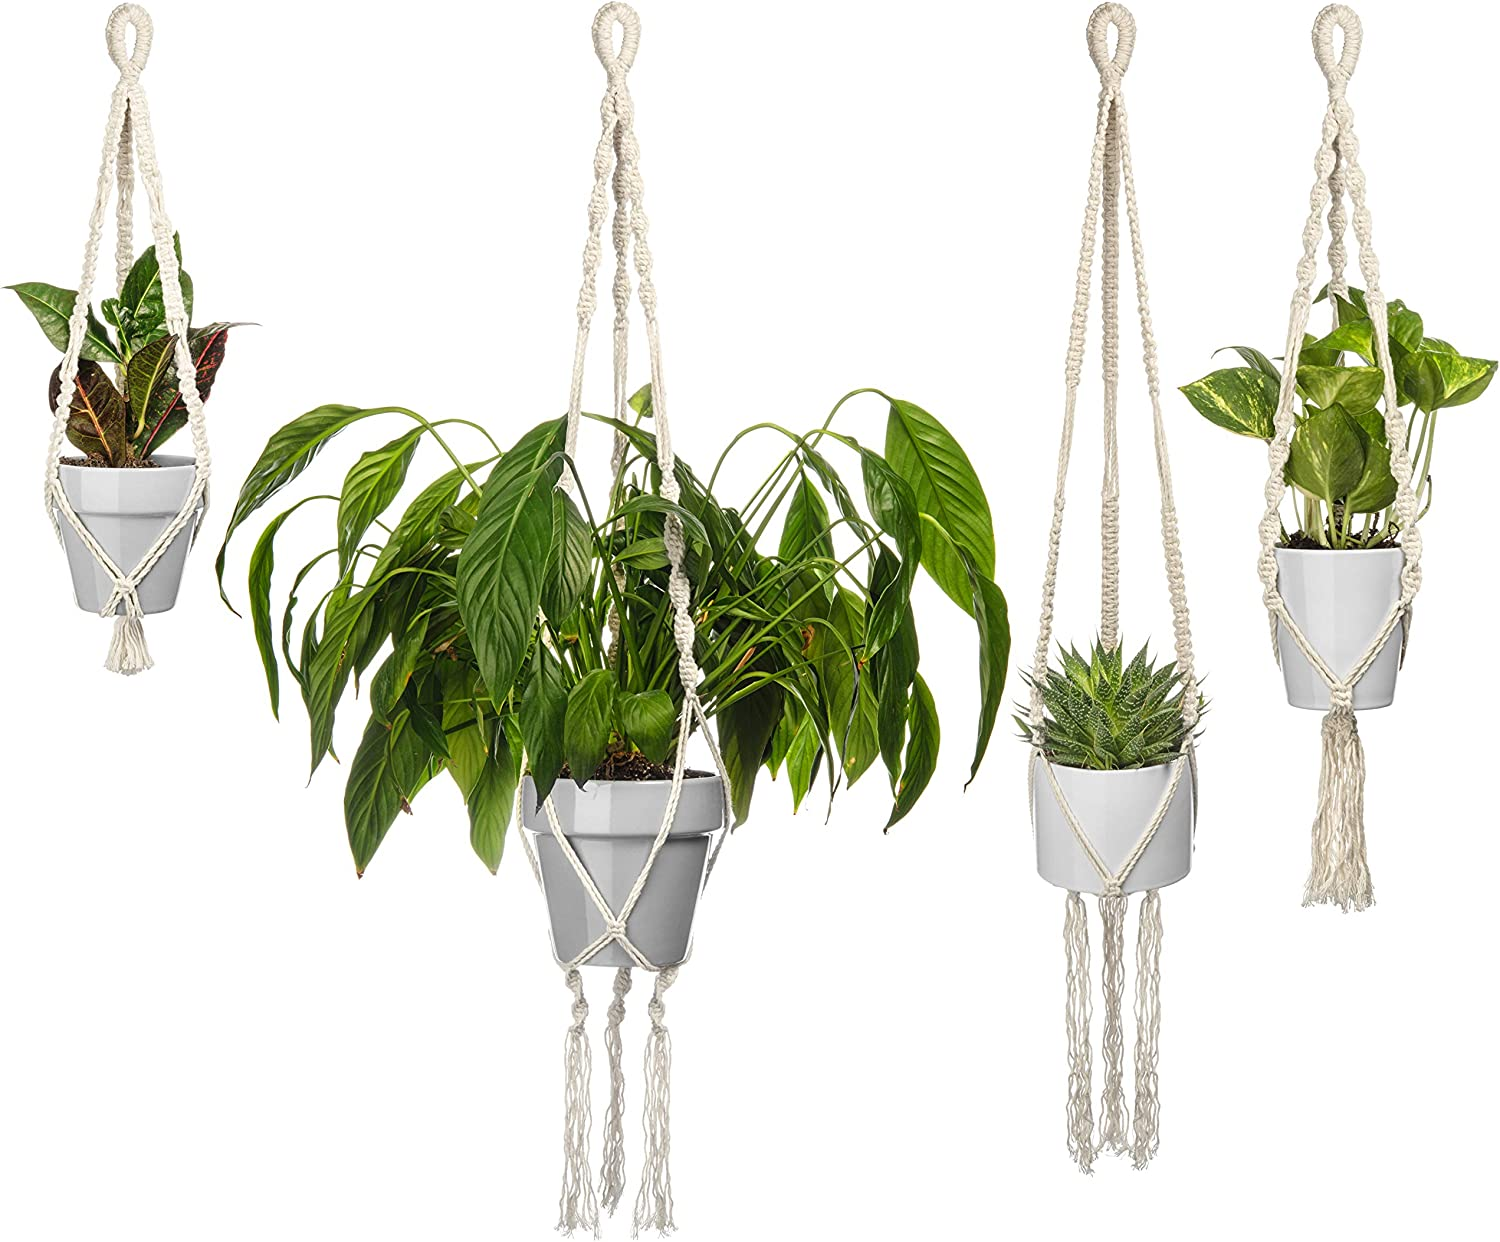 Macrame Plant Holders by MySmarterStyle-Indoor or Outdoor pots Hangers for Your Flowers or Succulent Plants Decor – Set of 4 Hanging Wall Planter Holders